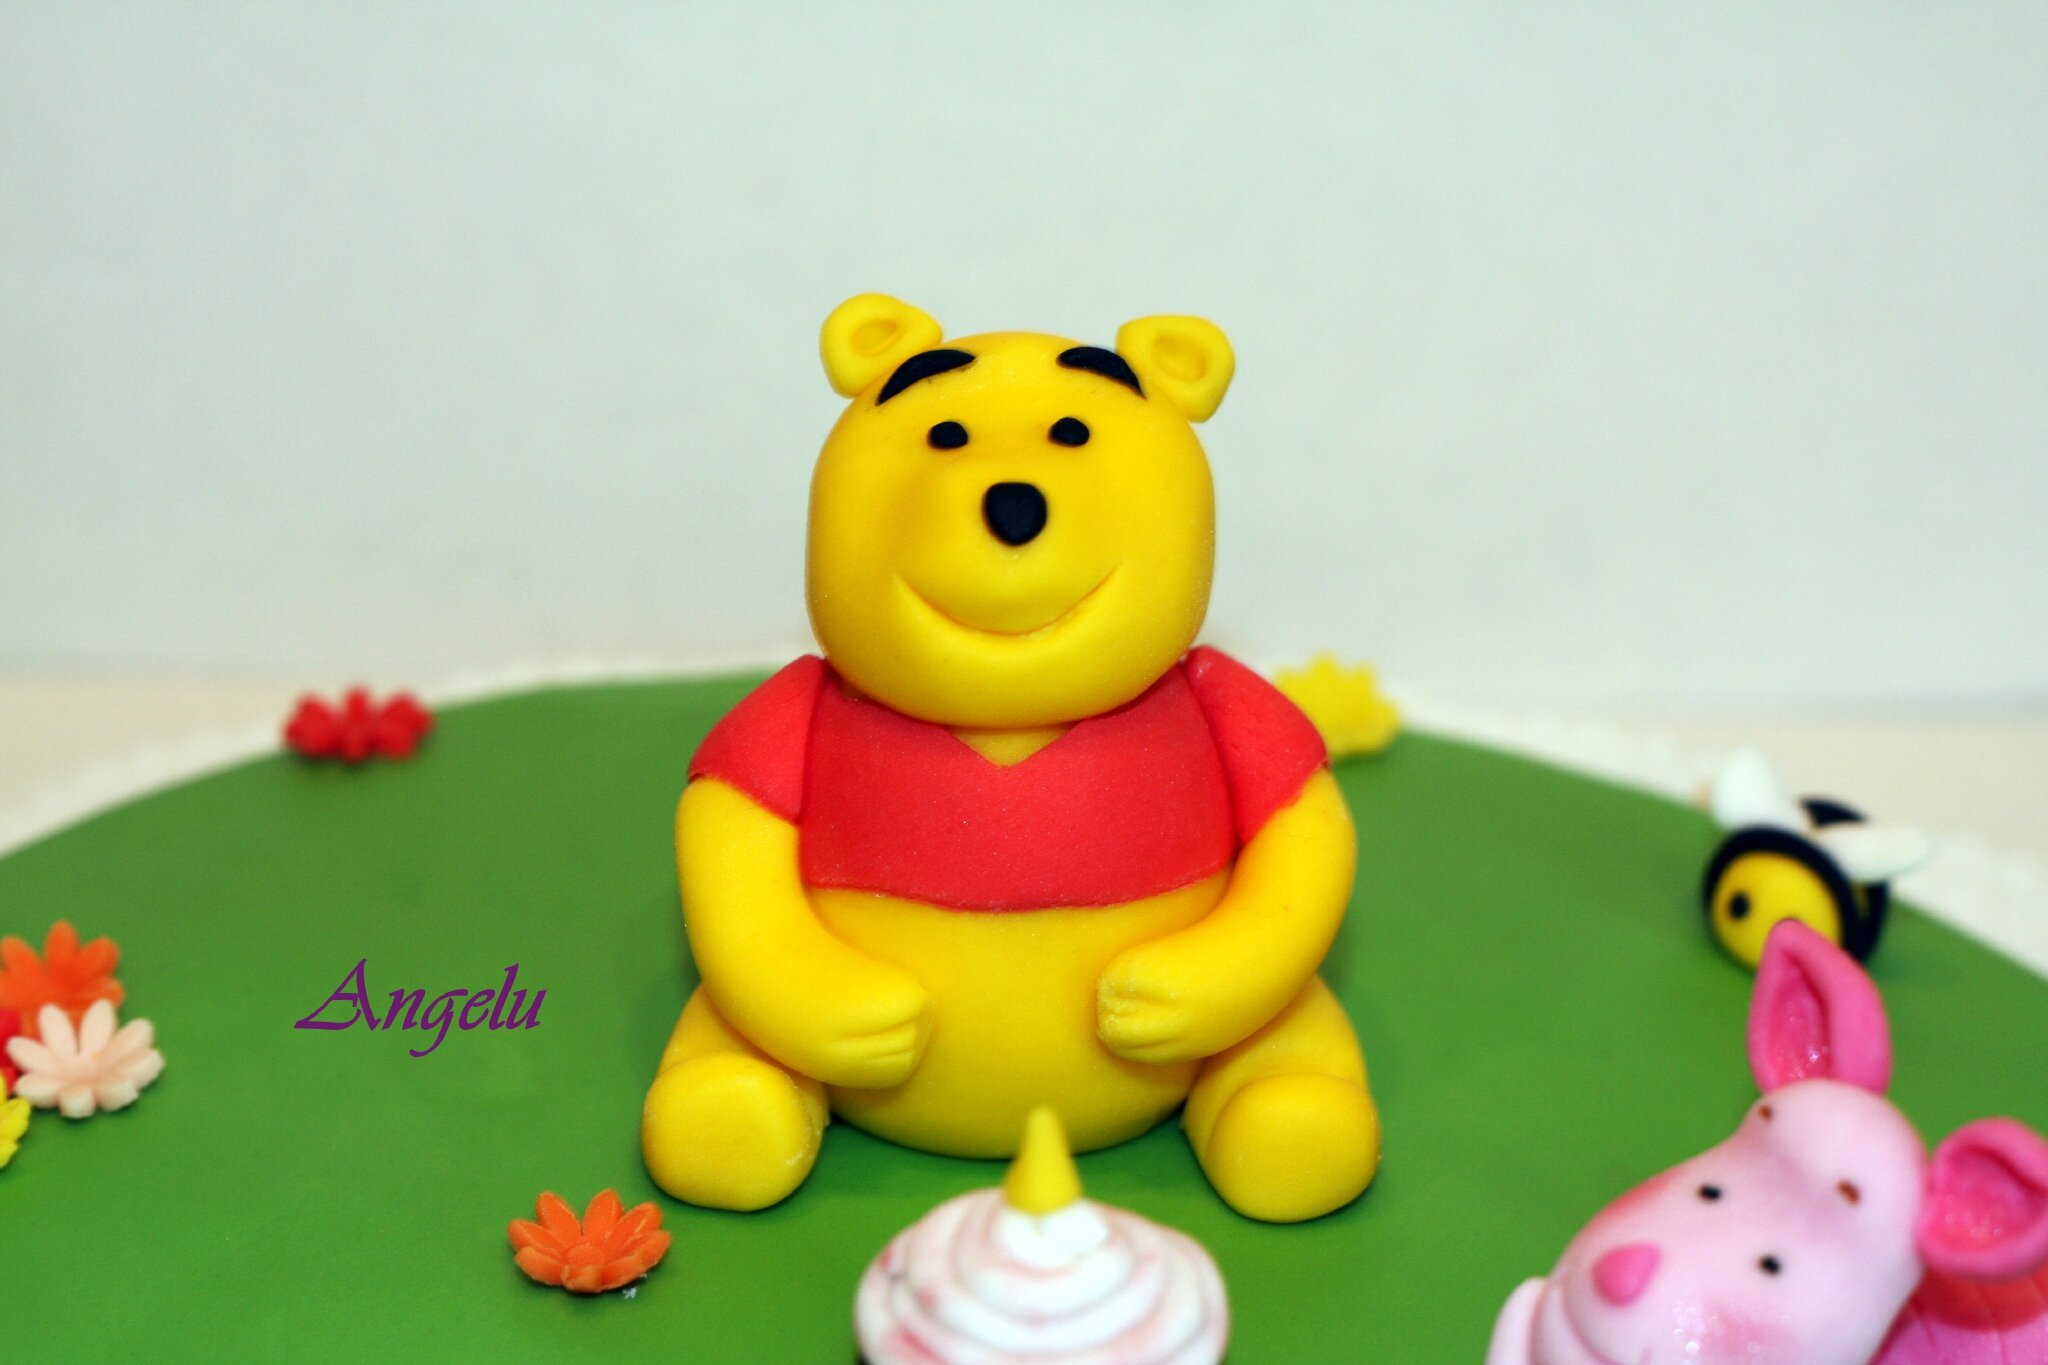 g 226 teau winnie l ourson et porcinet ma patisserie contact isilda neuf fr